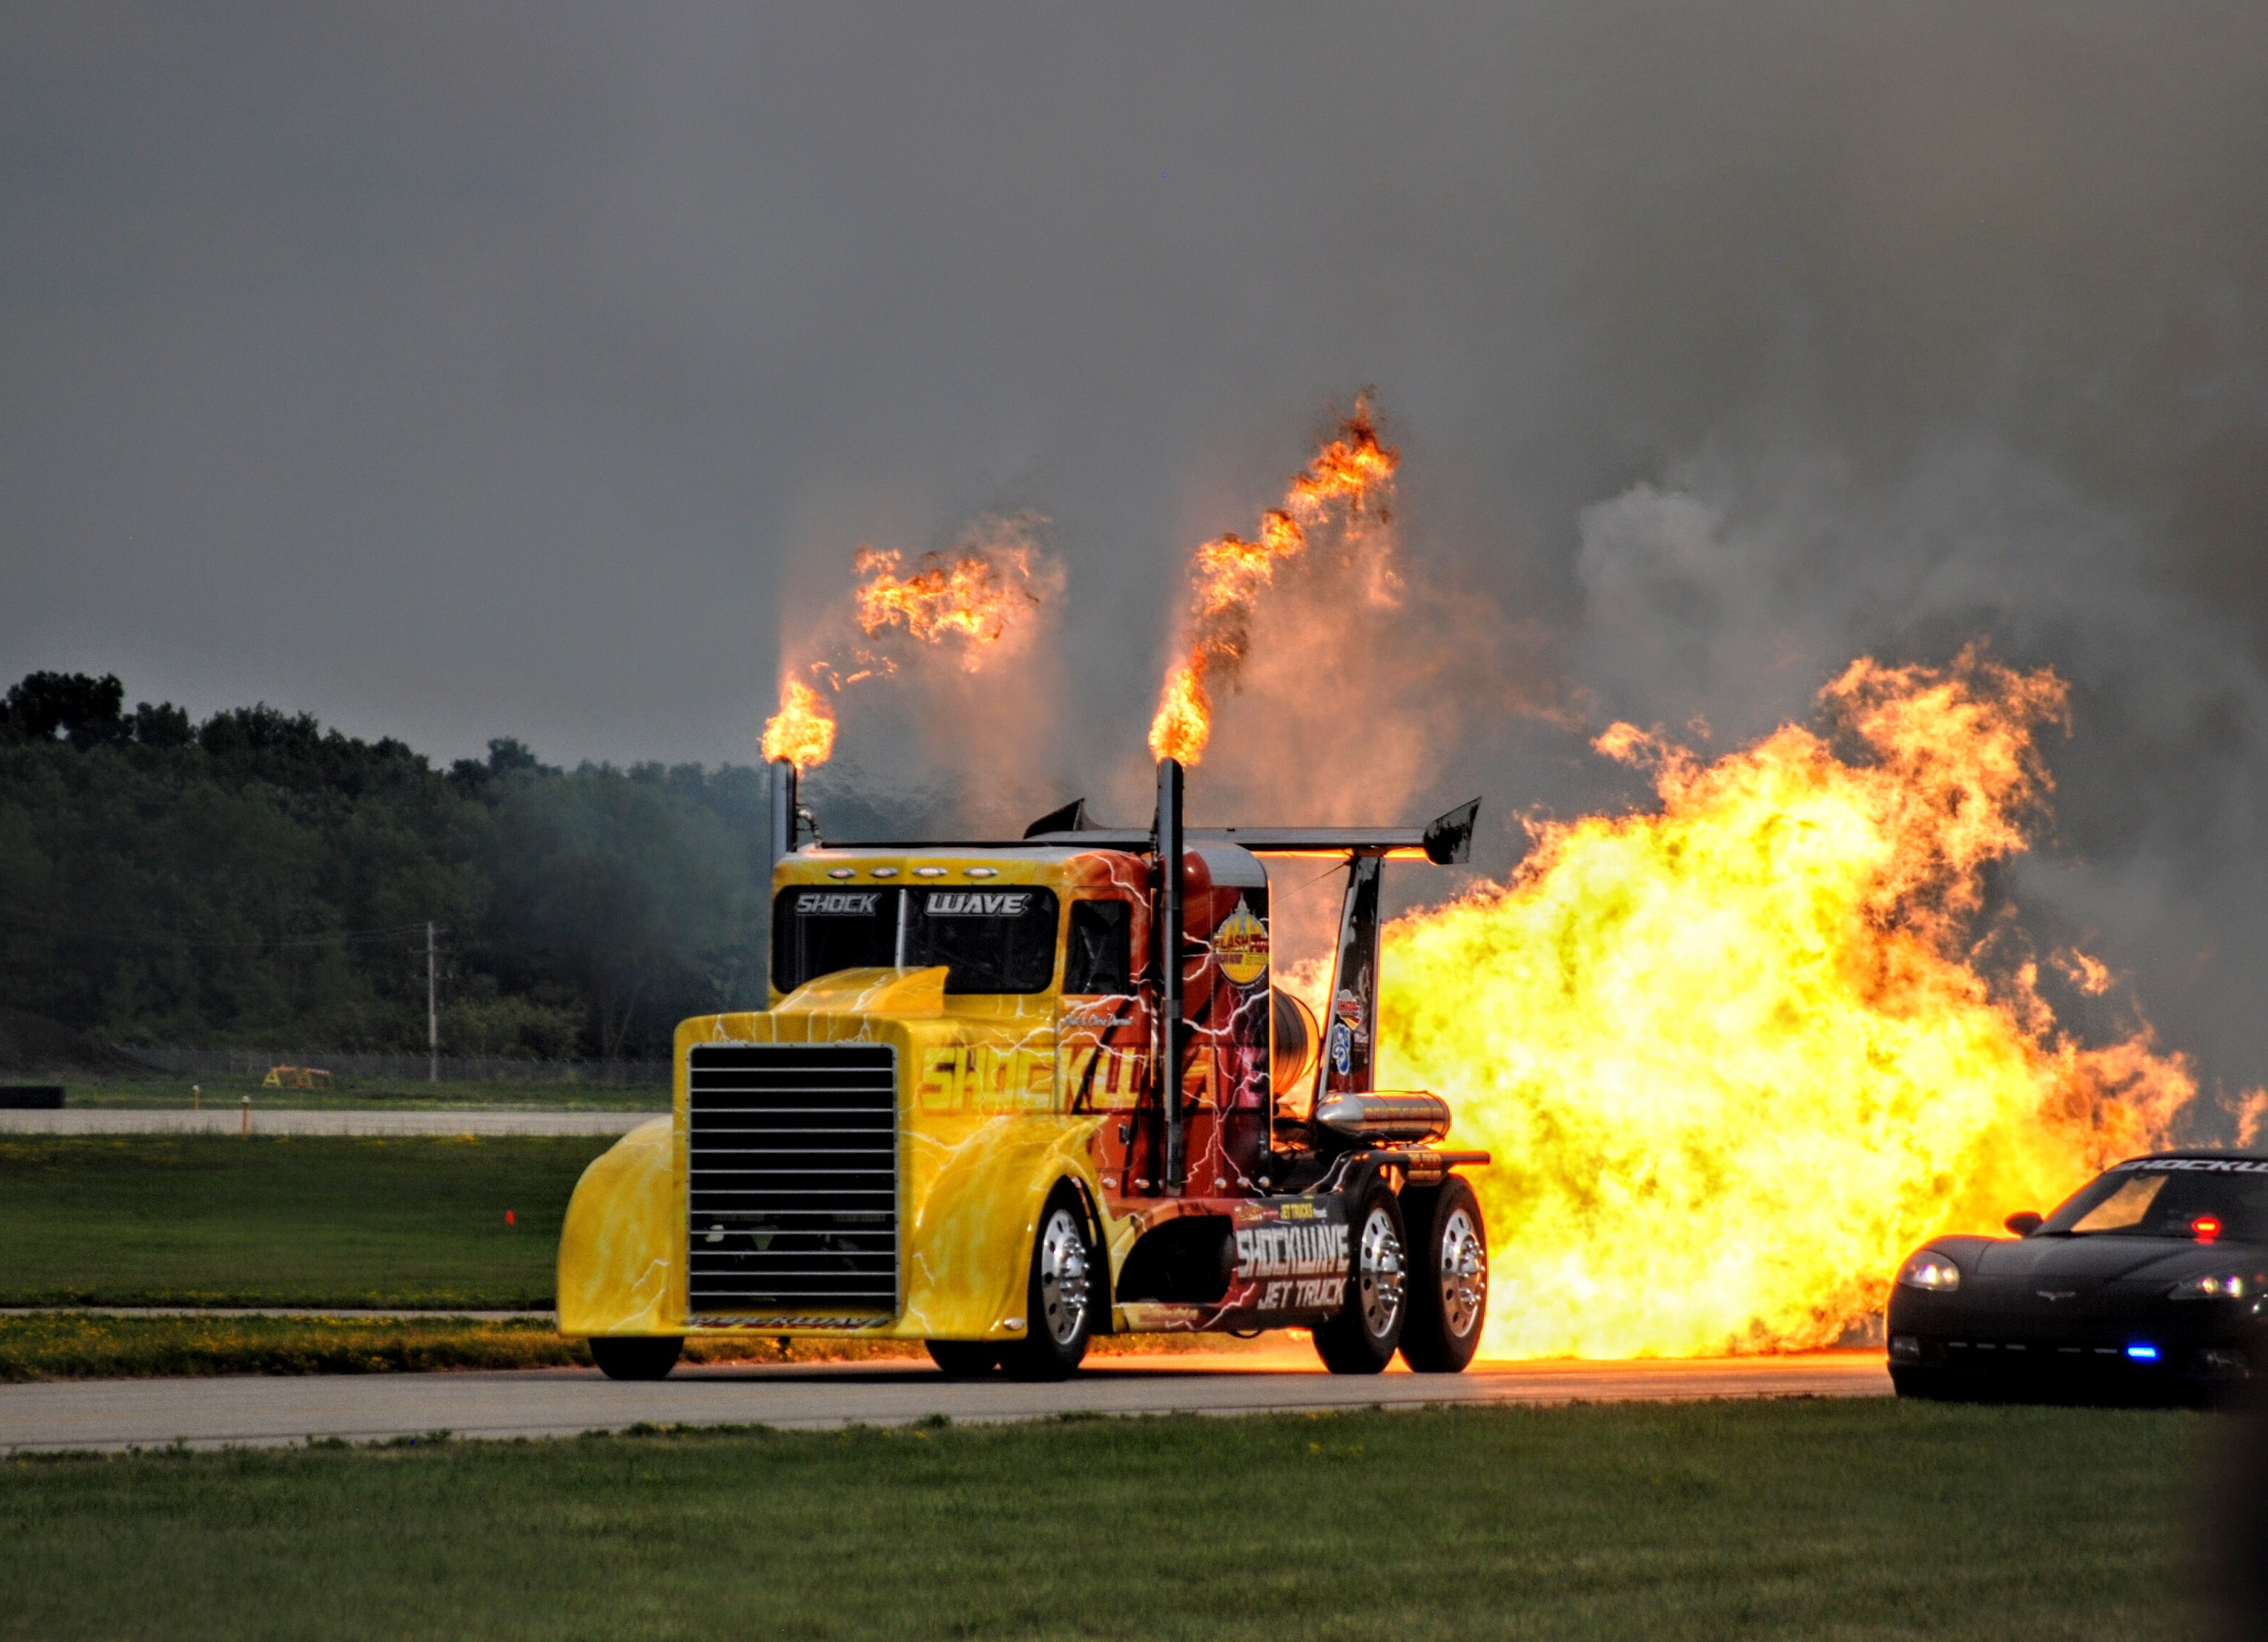 yellow semi truck on fire behind